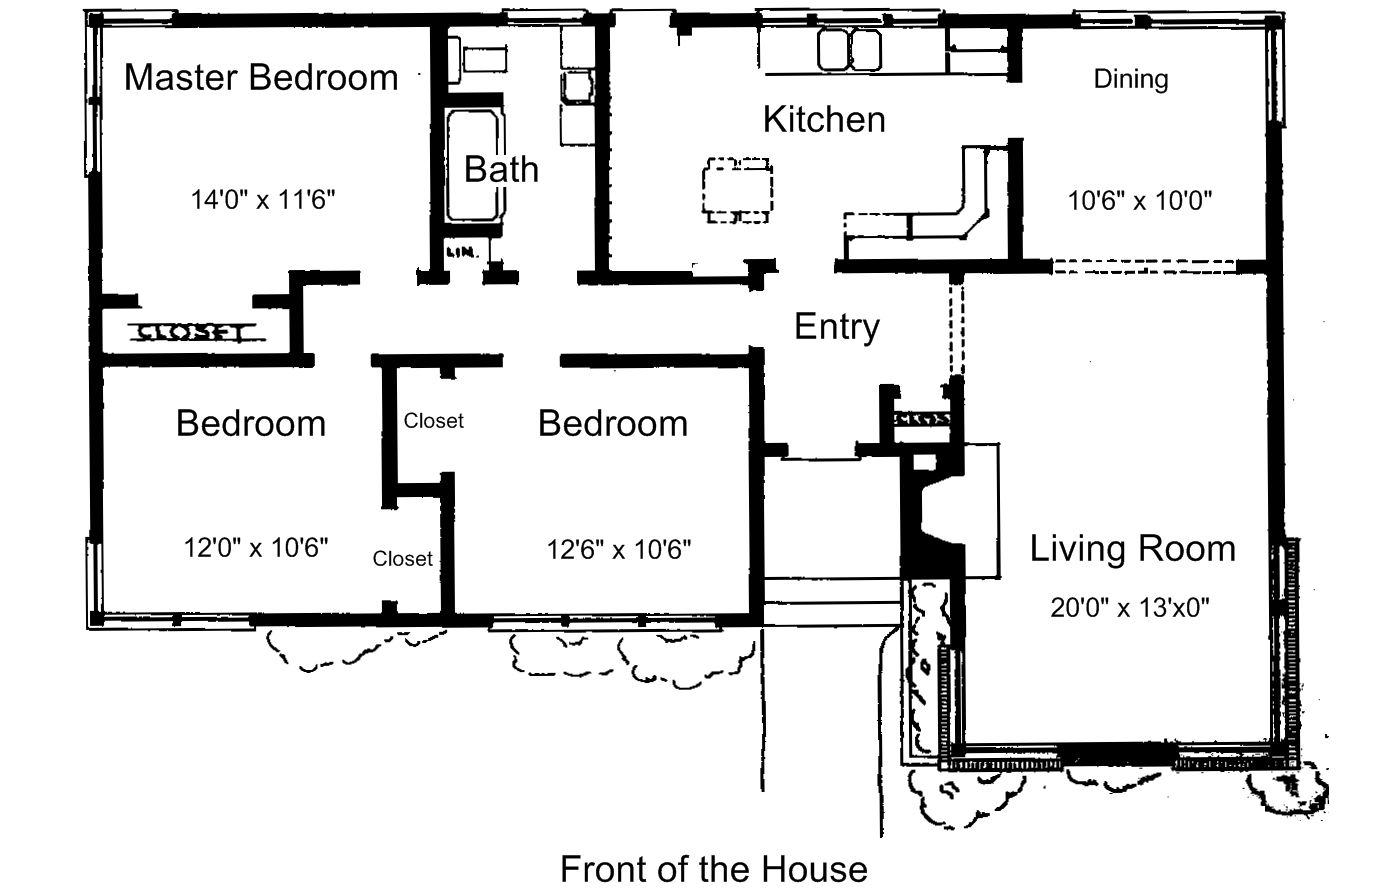 Free Small House Plans For Ideas or Just Dreaming on swimming pool plan, commercial plan, plot plan, the big valley home floor plan, shop plan, kitchen plan, first floor plan, real estate plan, garden plan,